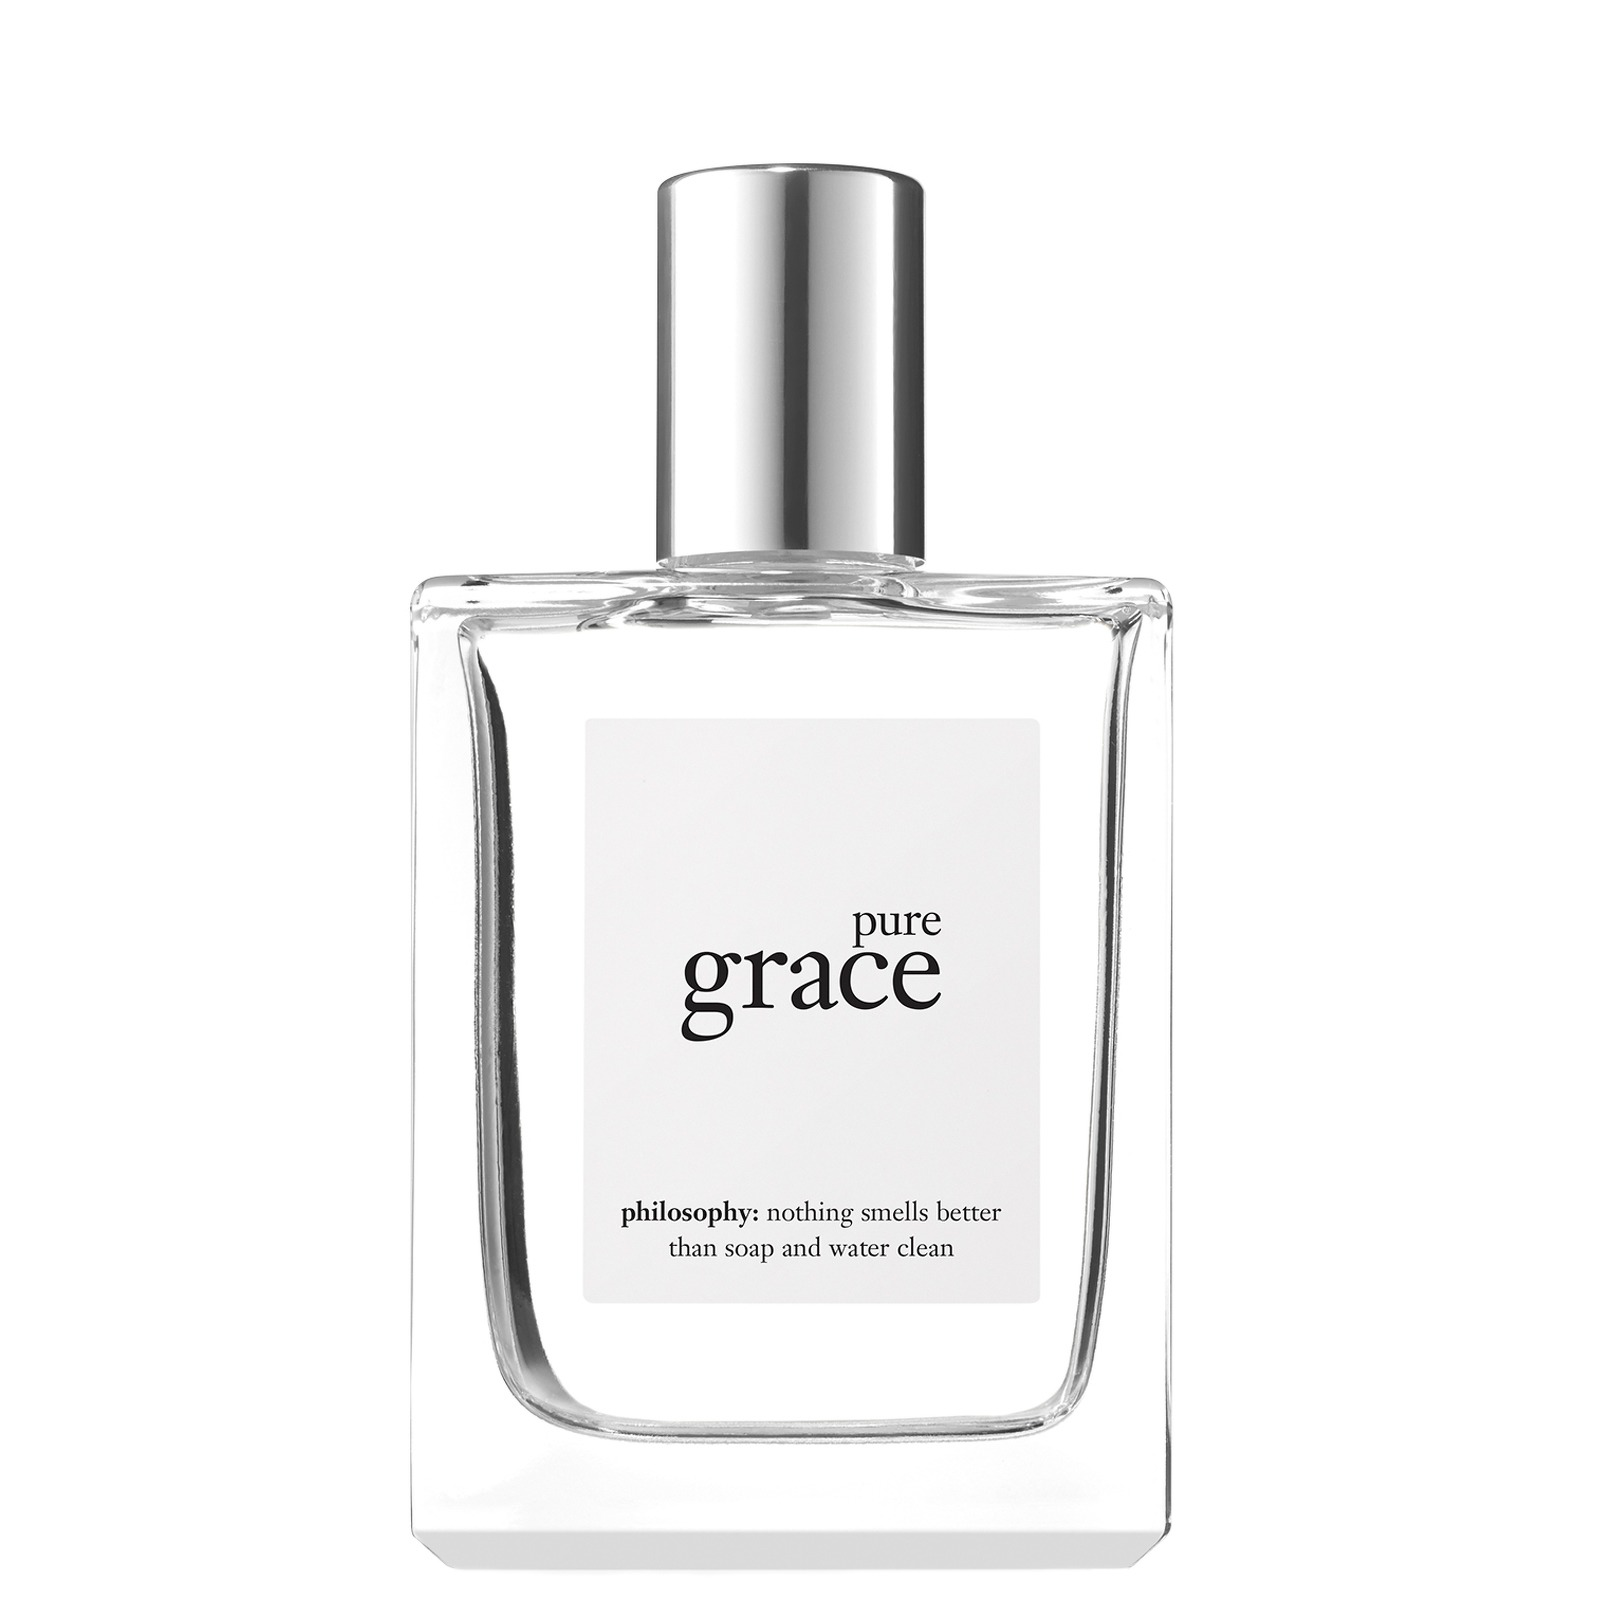 philosophy Pure Grace For Her Eau de Toilette Spray 60ml